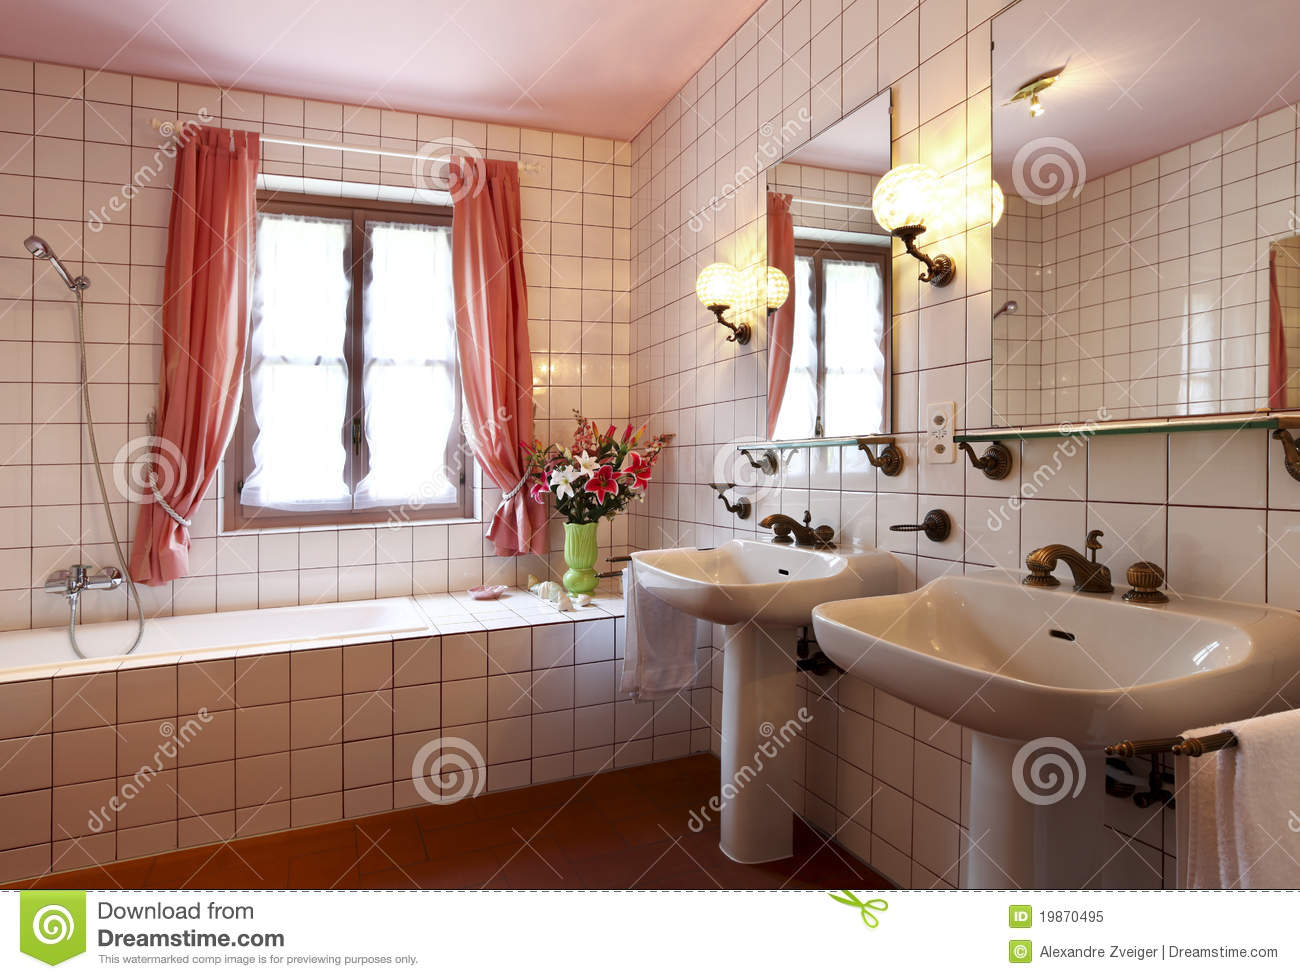 belle salle de bains image stock image du bain classique 19870495. Black Bedroom Furniture Sets. Home Design Ideas